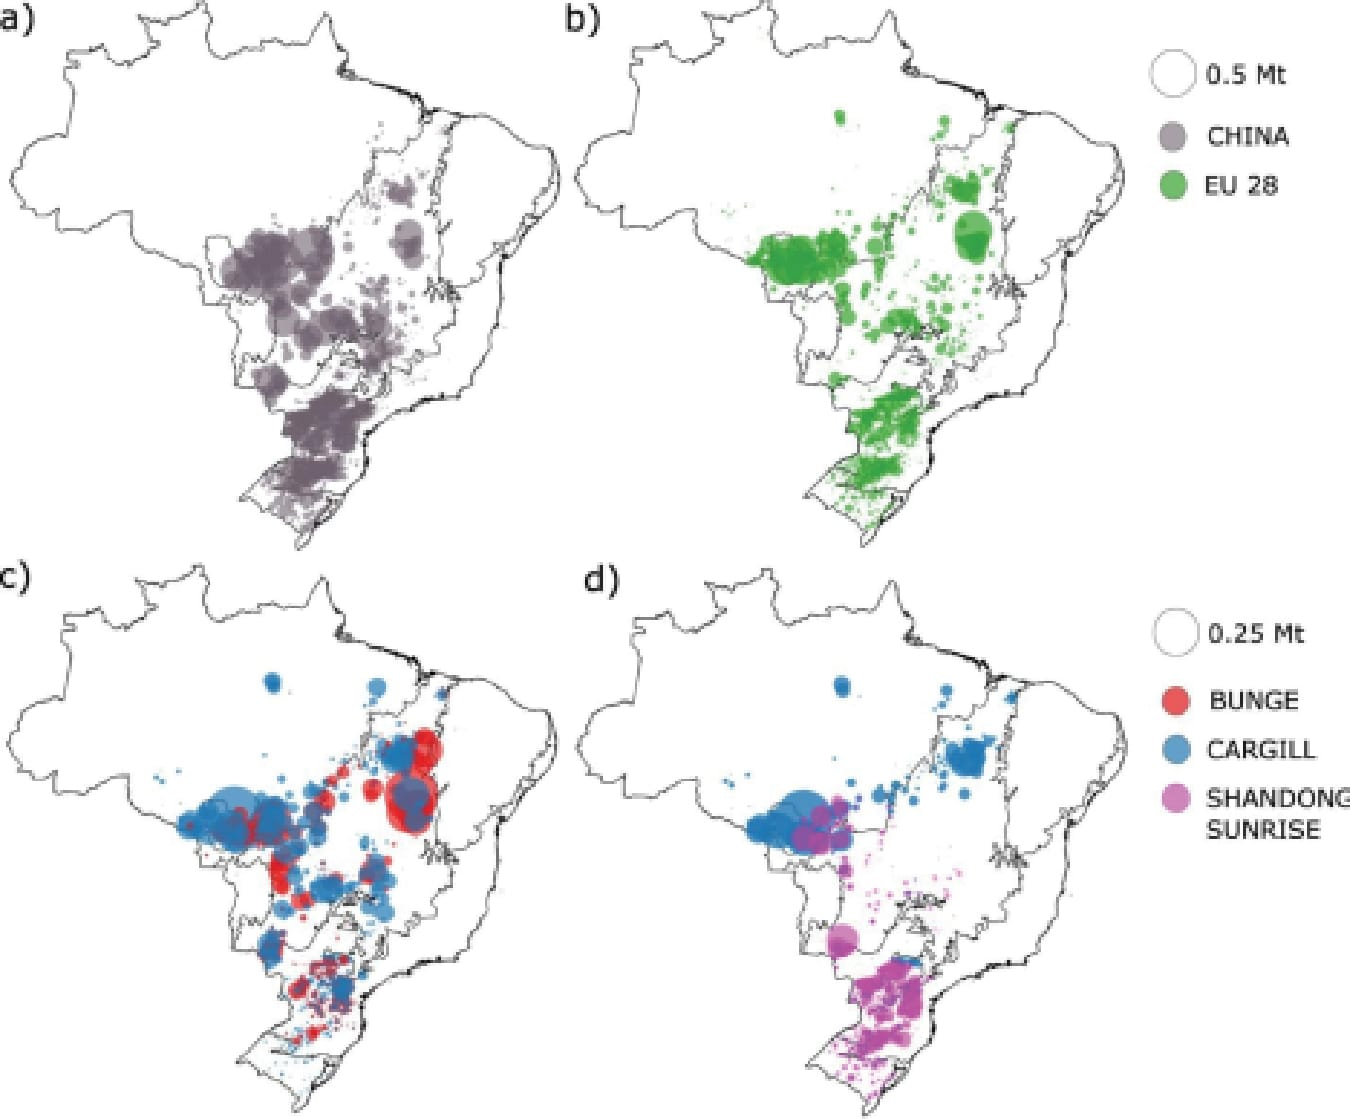 | The spatial origins of soy production in Brazil based on trade data in metric tons | MR Online